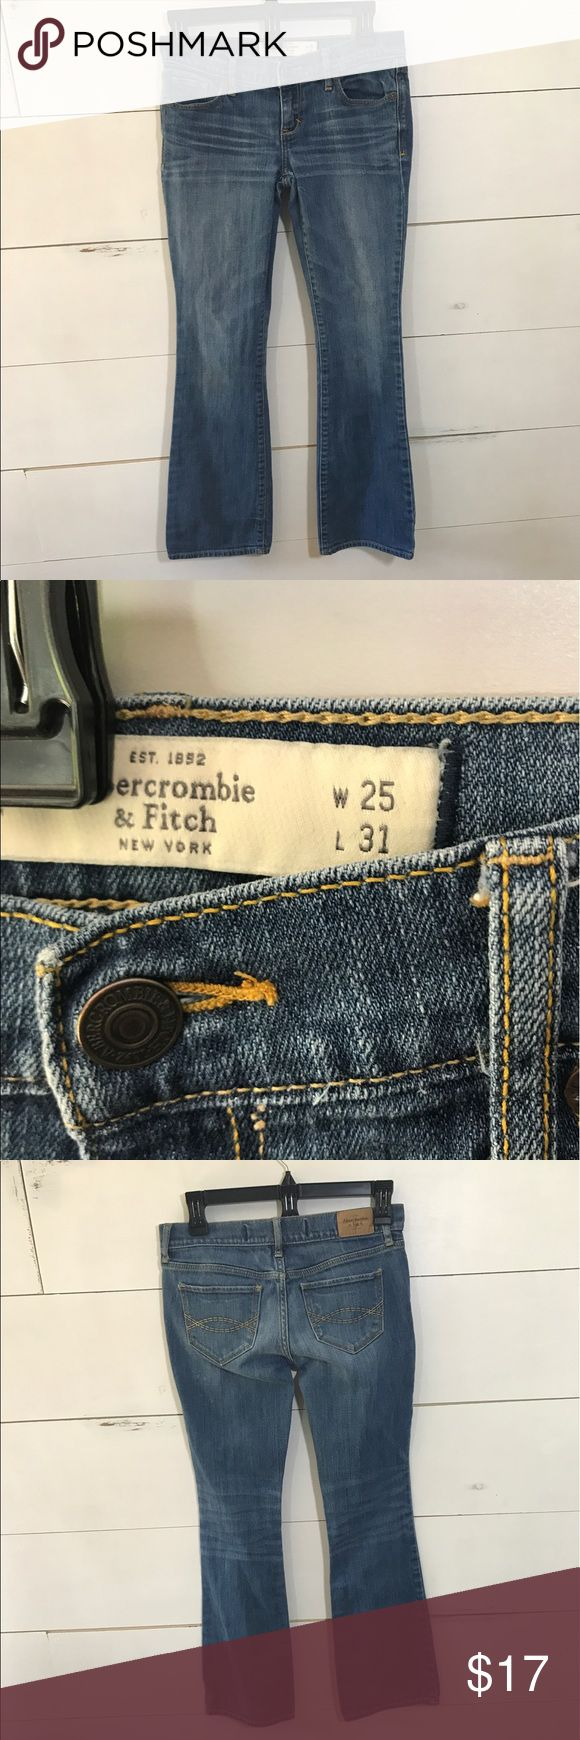 Abercrombie and Fitch Womens Jeans Sz w 25/L 31 Abercrombie and Fitch Womens Jeans Sz w 25/L 31 Abercrombie & Fitch Jeans Boot Cut